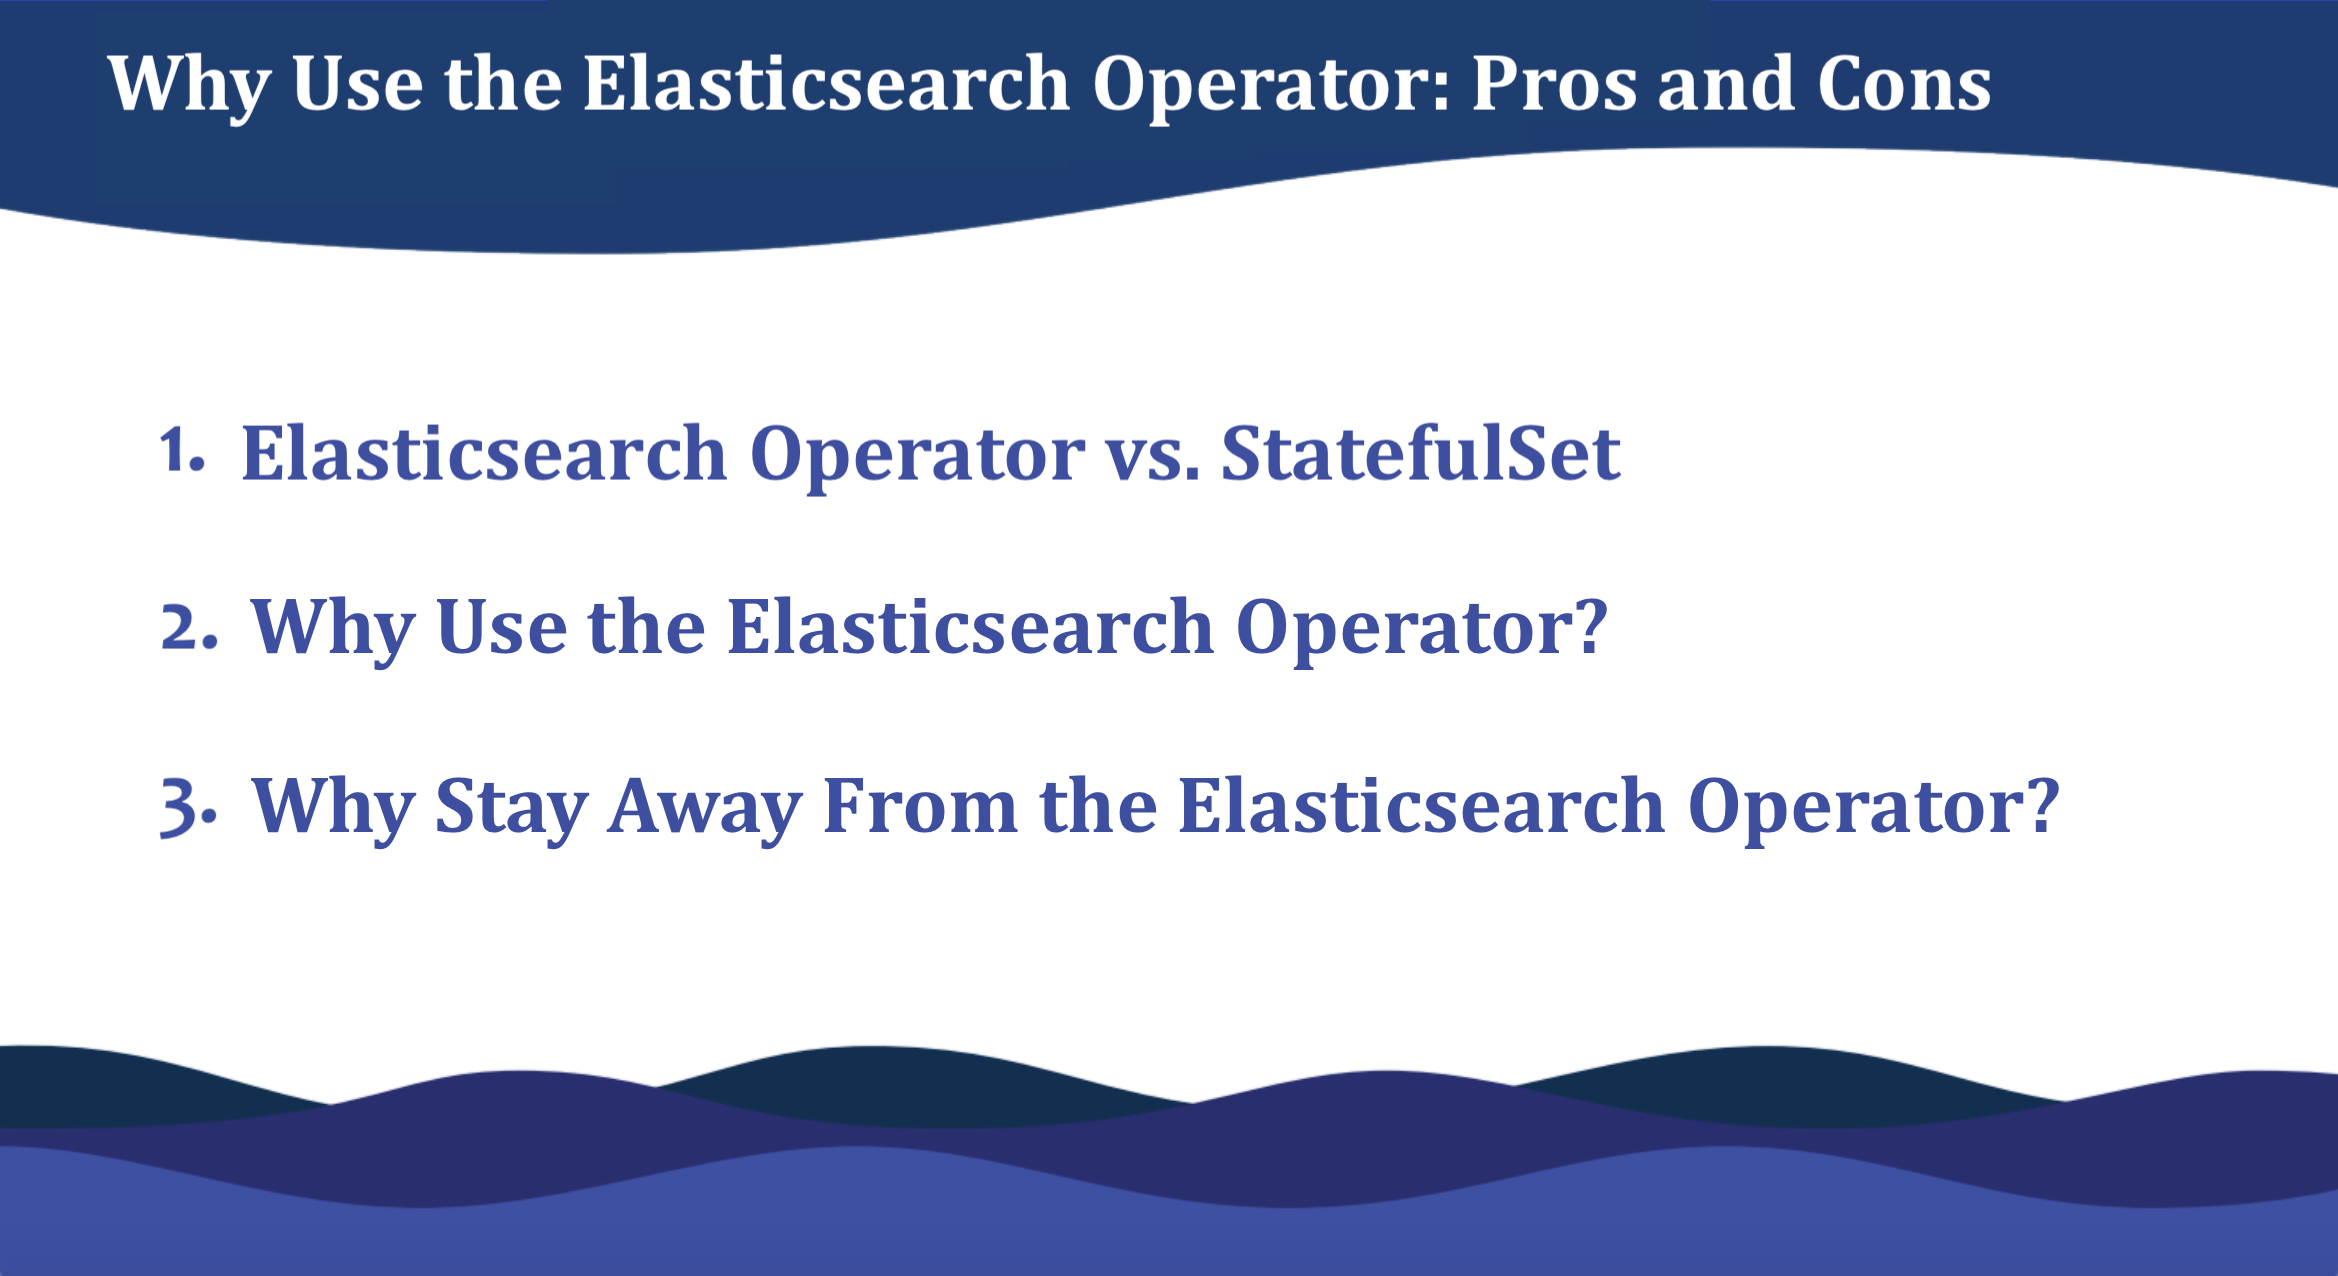 Elasticsearch Operator: Pros and Cons